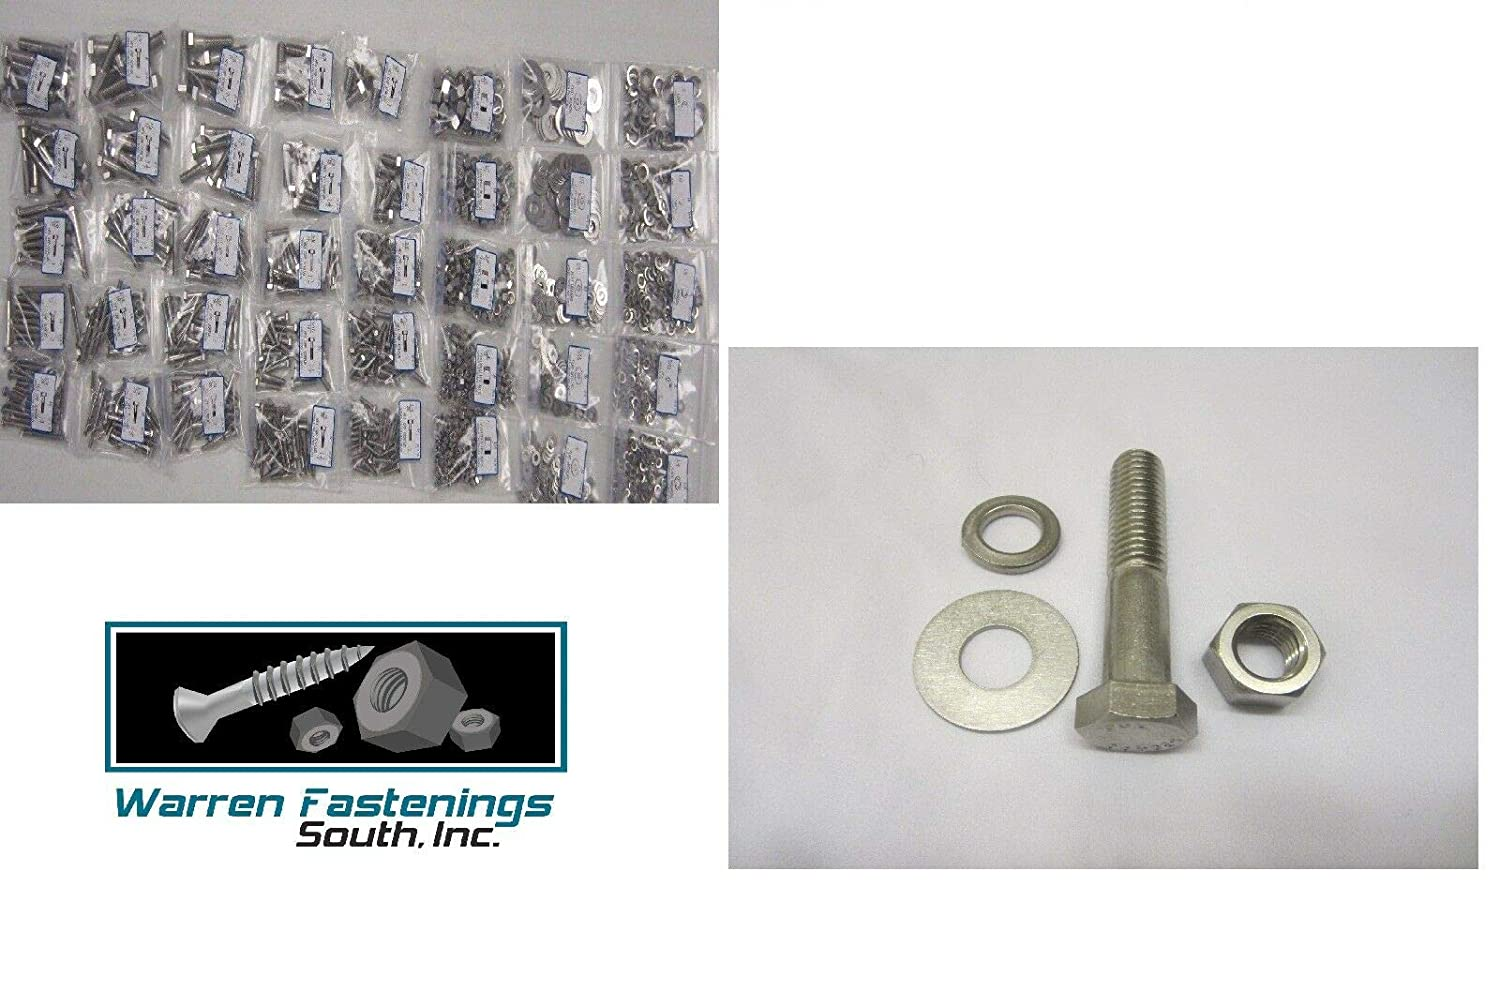 Bolt 304 and Washer Assortment 18-8 Nut Coarse Thread Set 1150 Piece Stainless Steel Hex Head Cap Screw